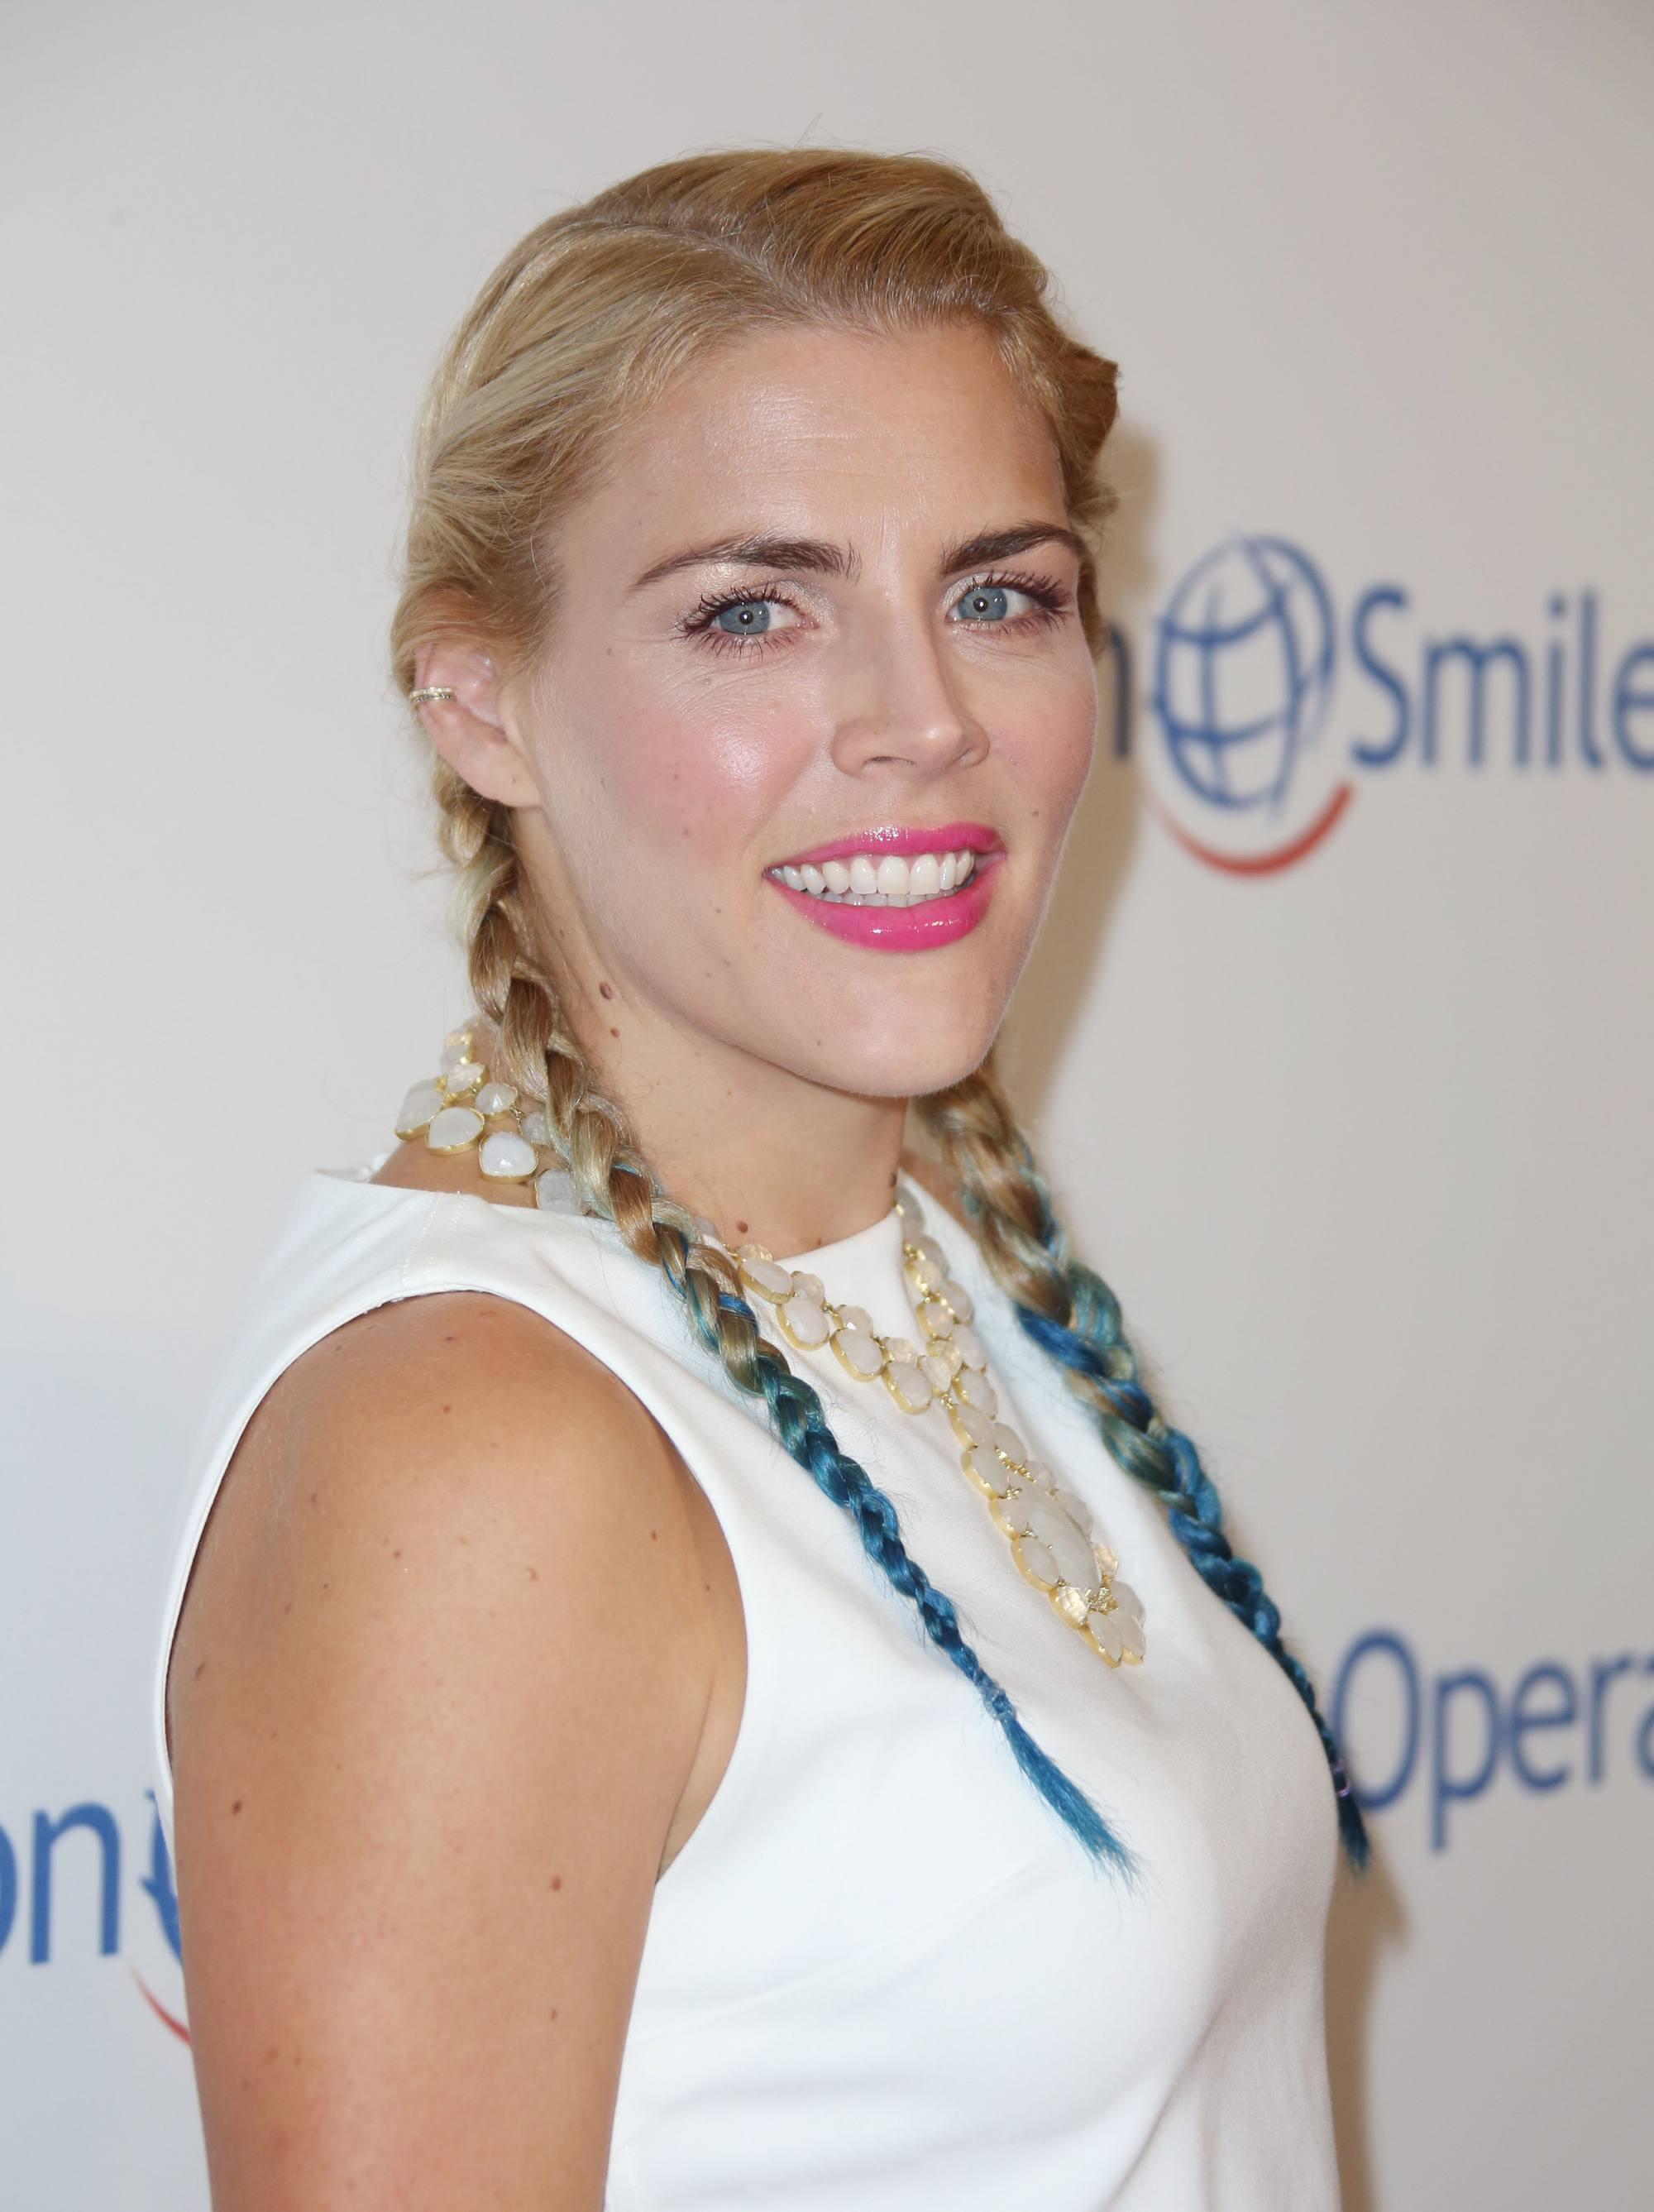 Blue hair: Actress Busy Philipps with blonde to blue dip dyed hair in boxer braids